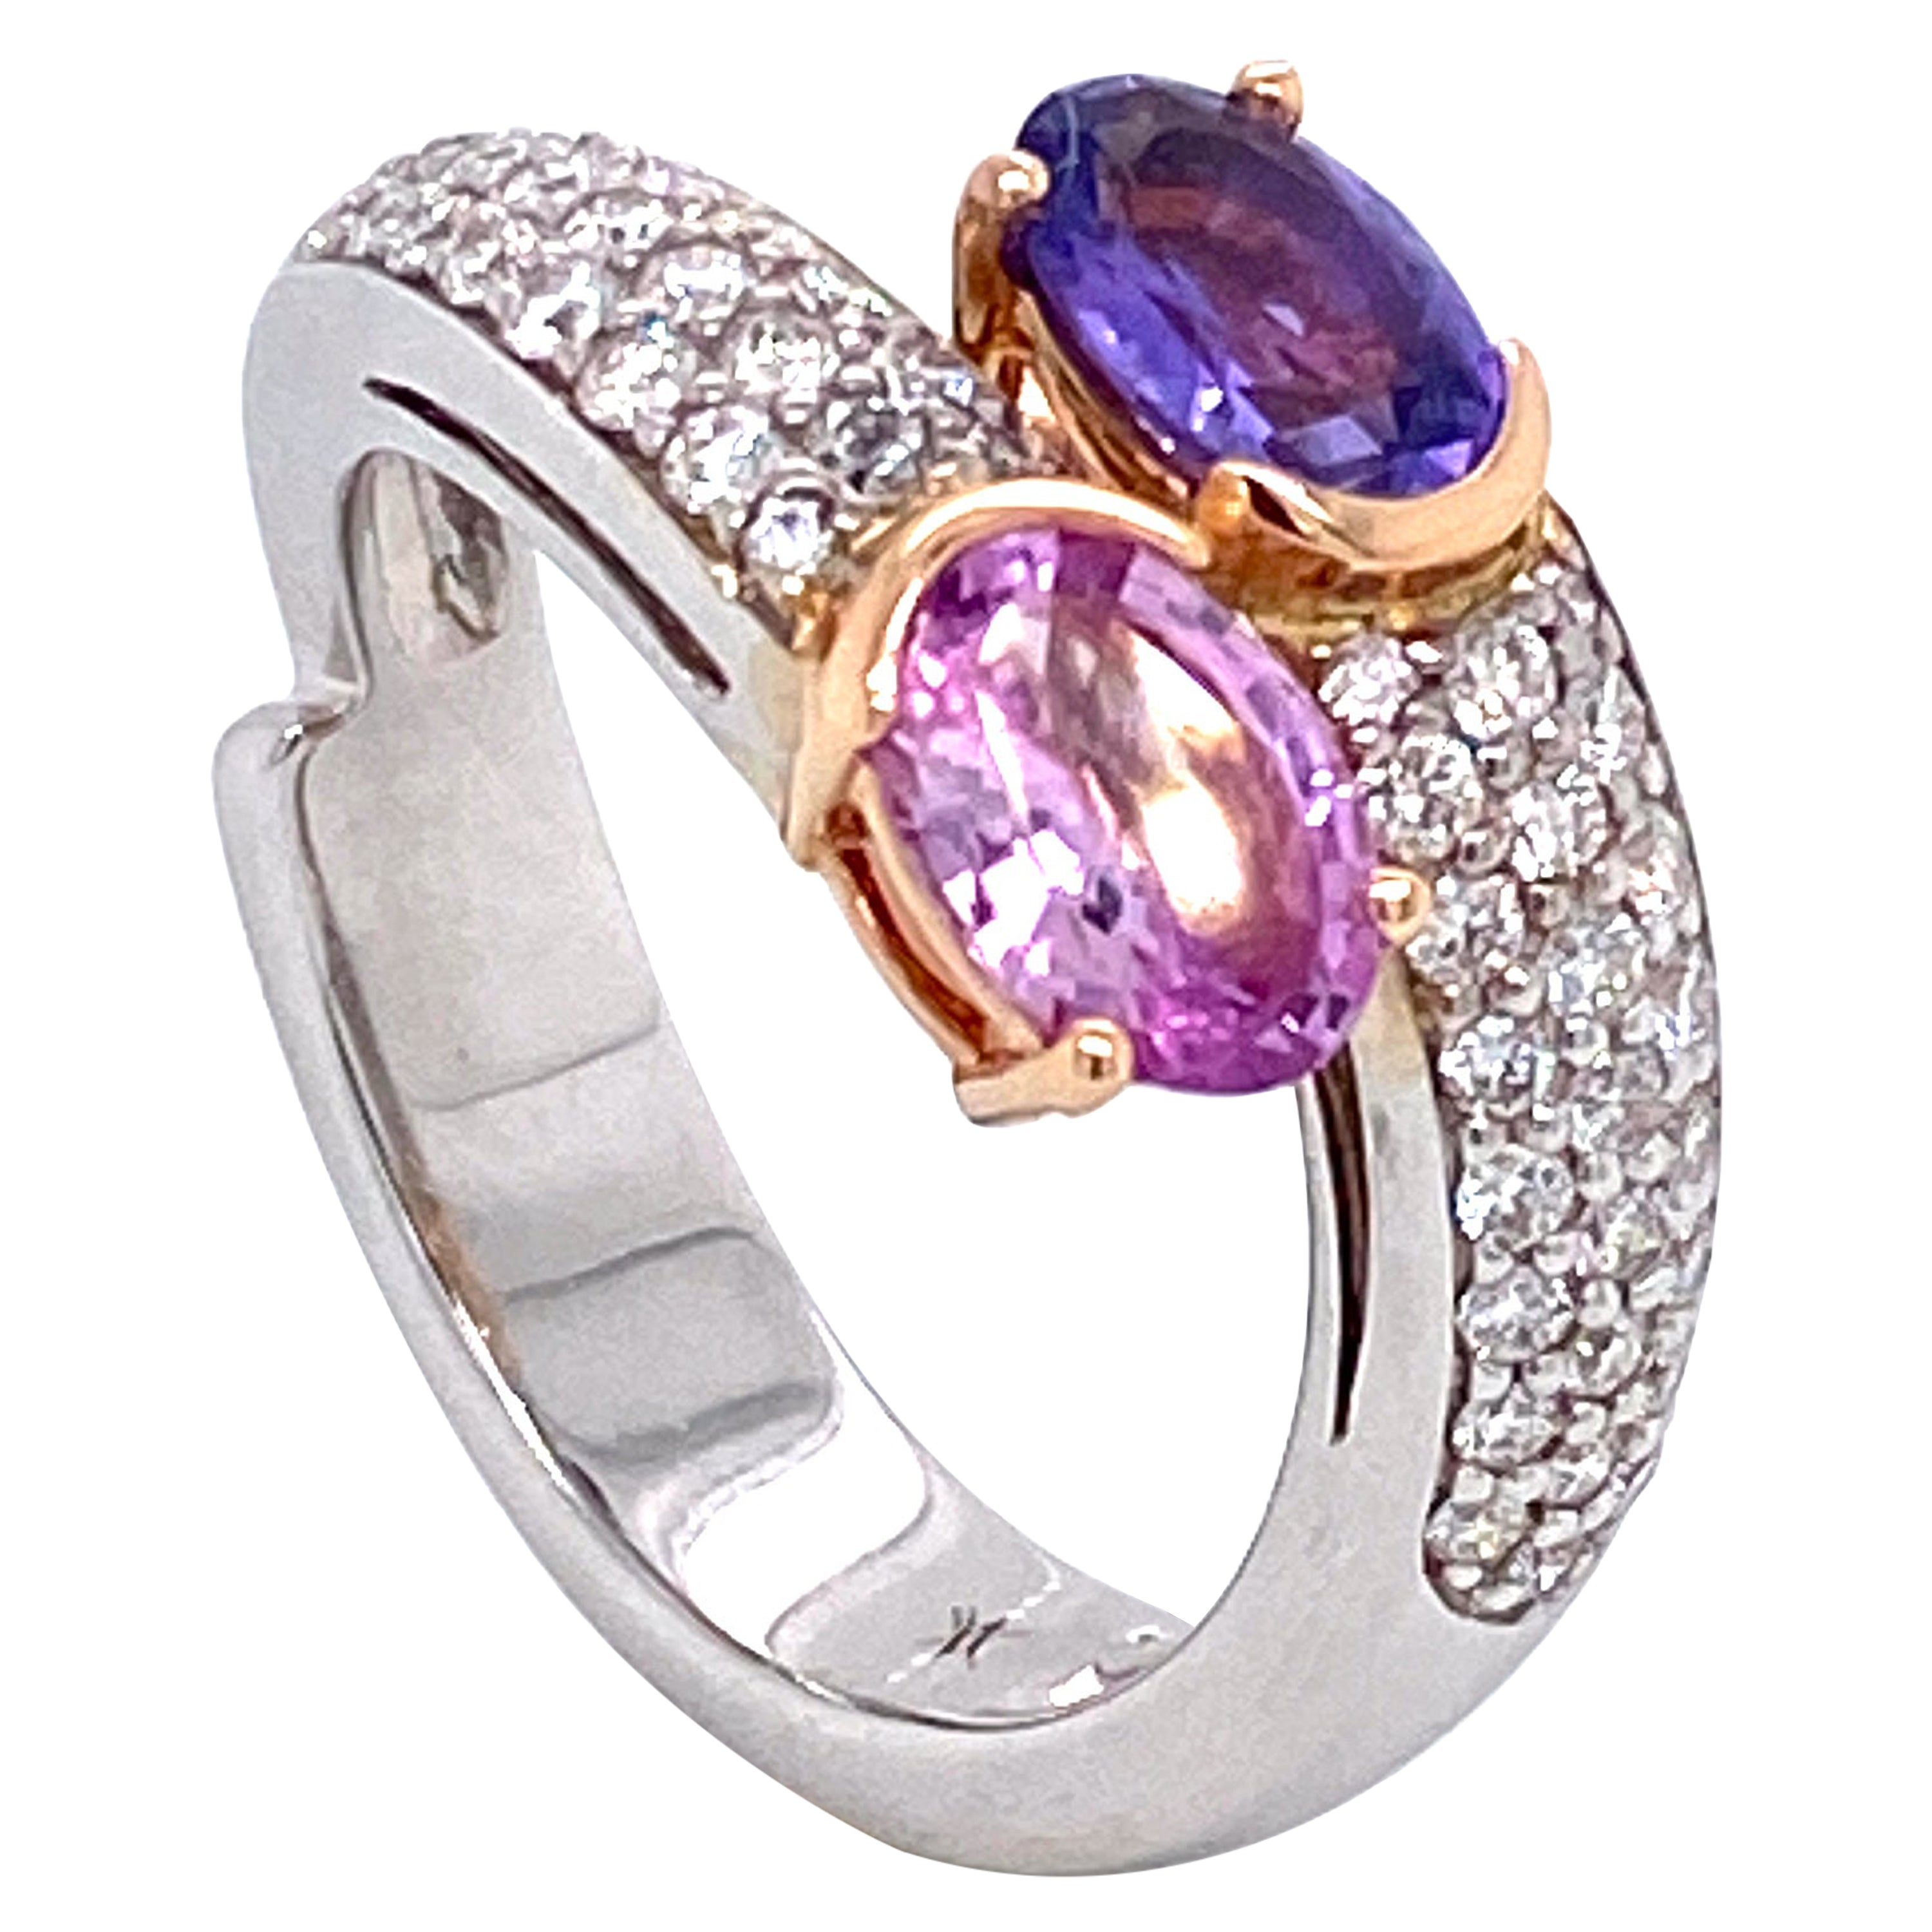 Unheated Pink Sapphire, Diamonds on White and Rose Gold 18 Karat Cocktail Ring